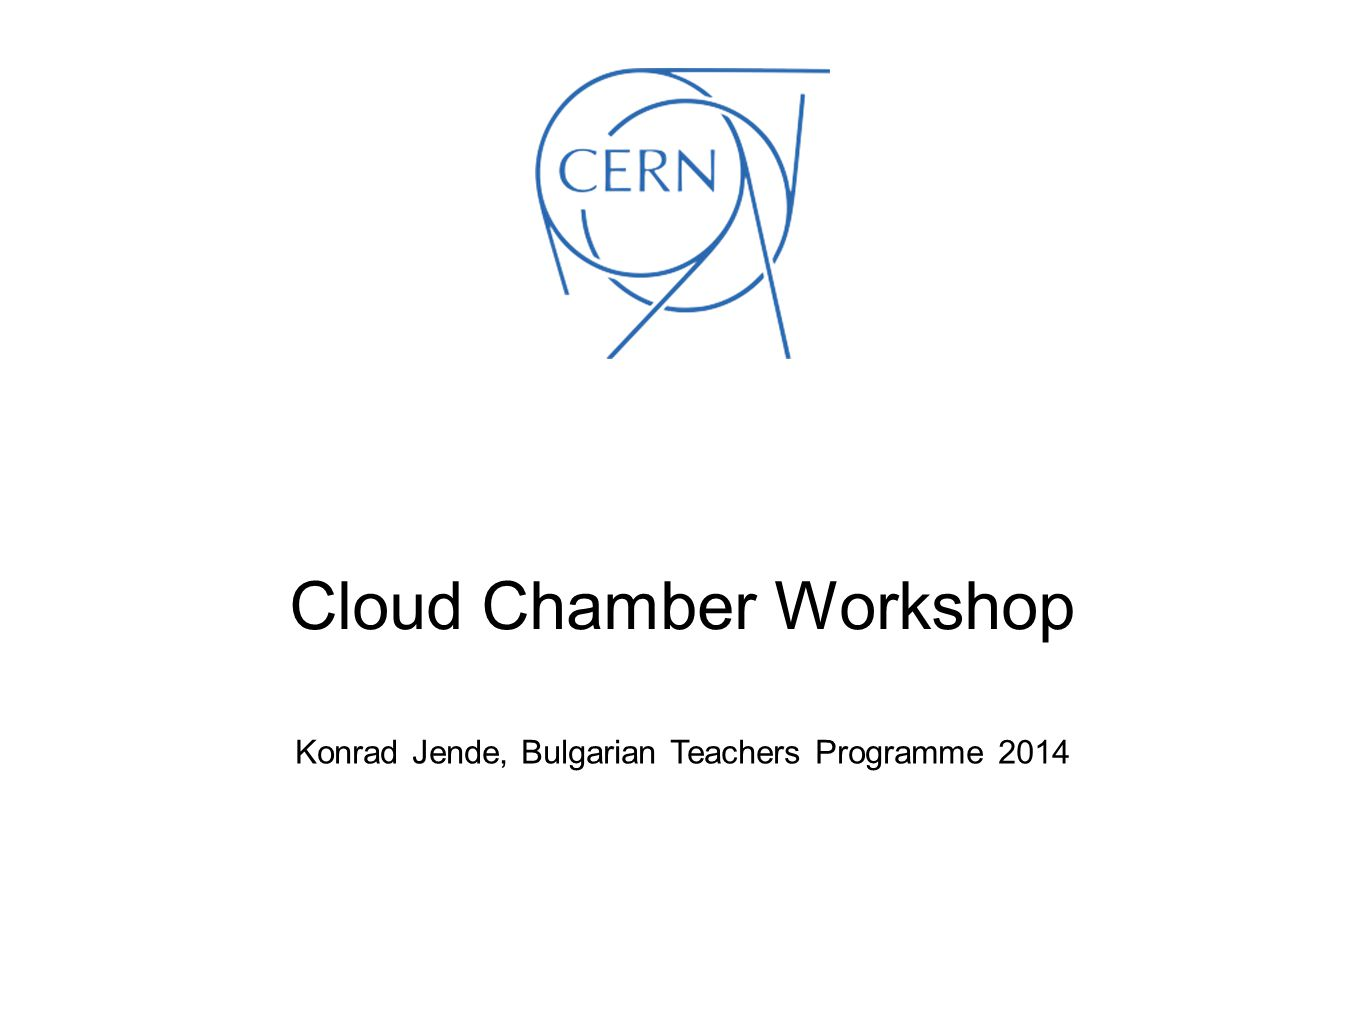 Cloud Chamber Workshop